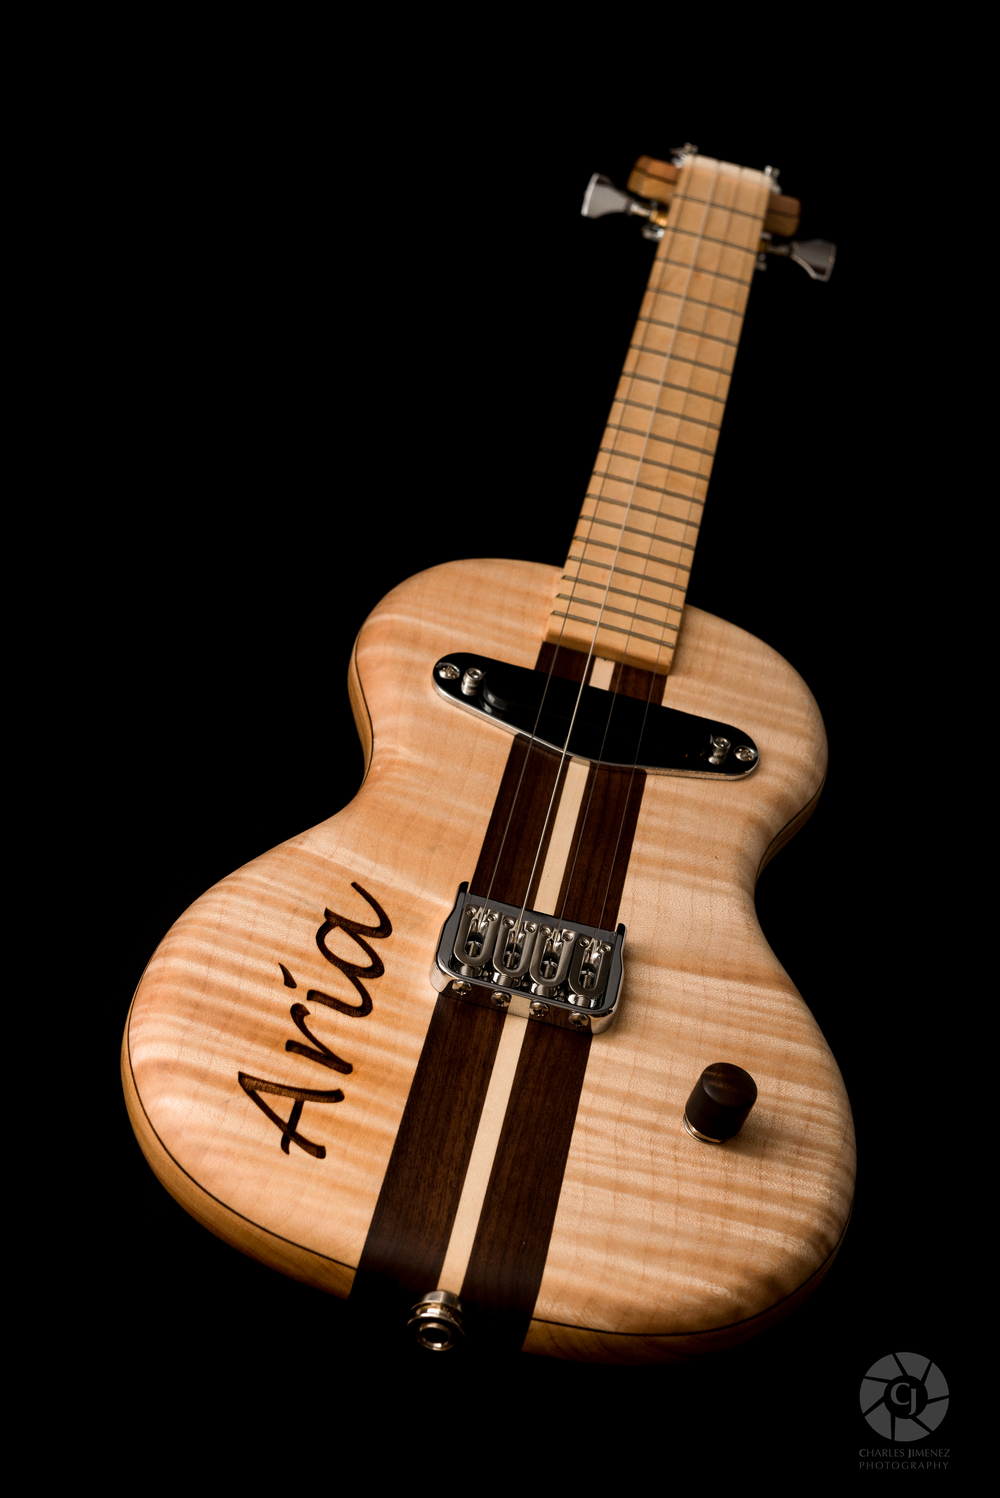 Better Mousetrap Guitars_Aria Ukulele_8-25-13_04.jpg